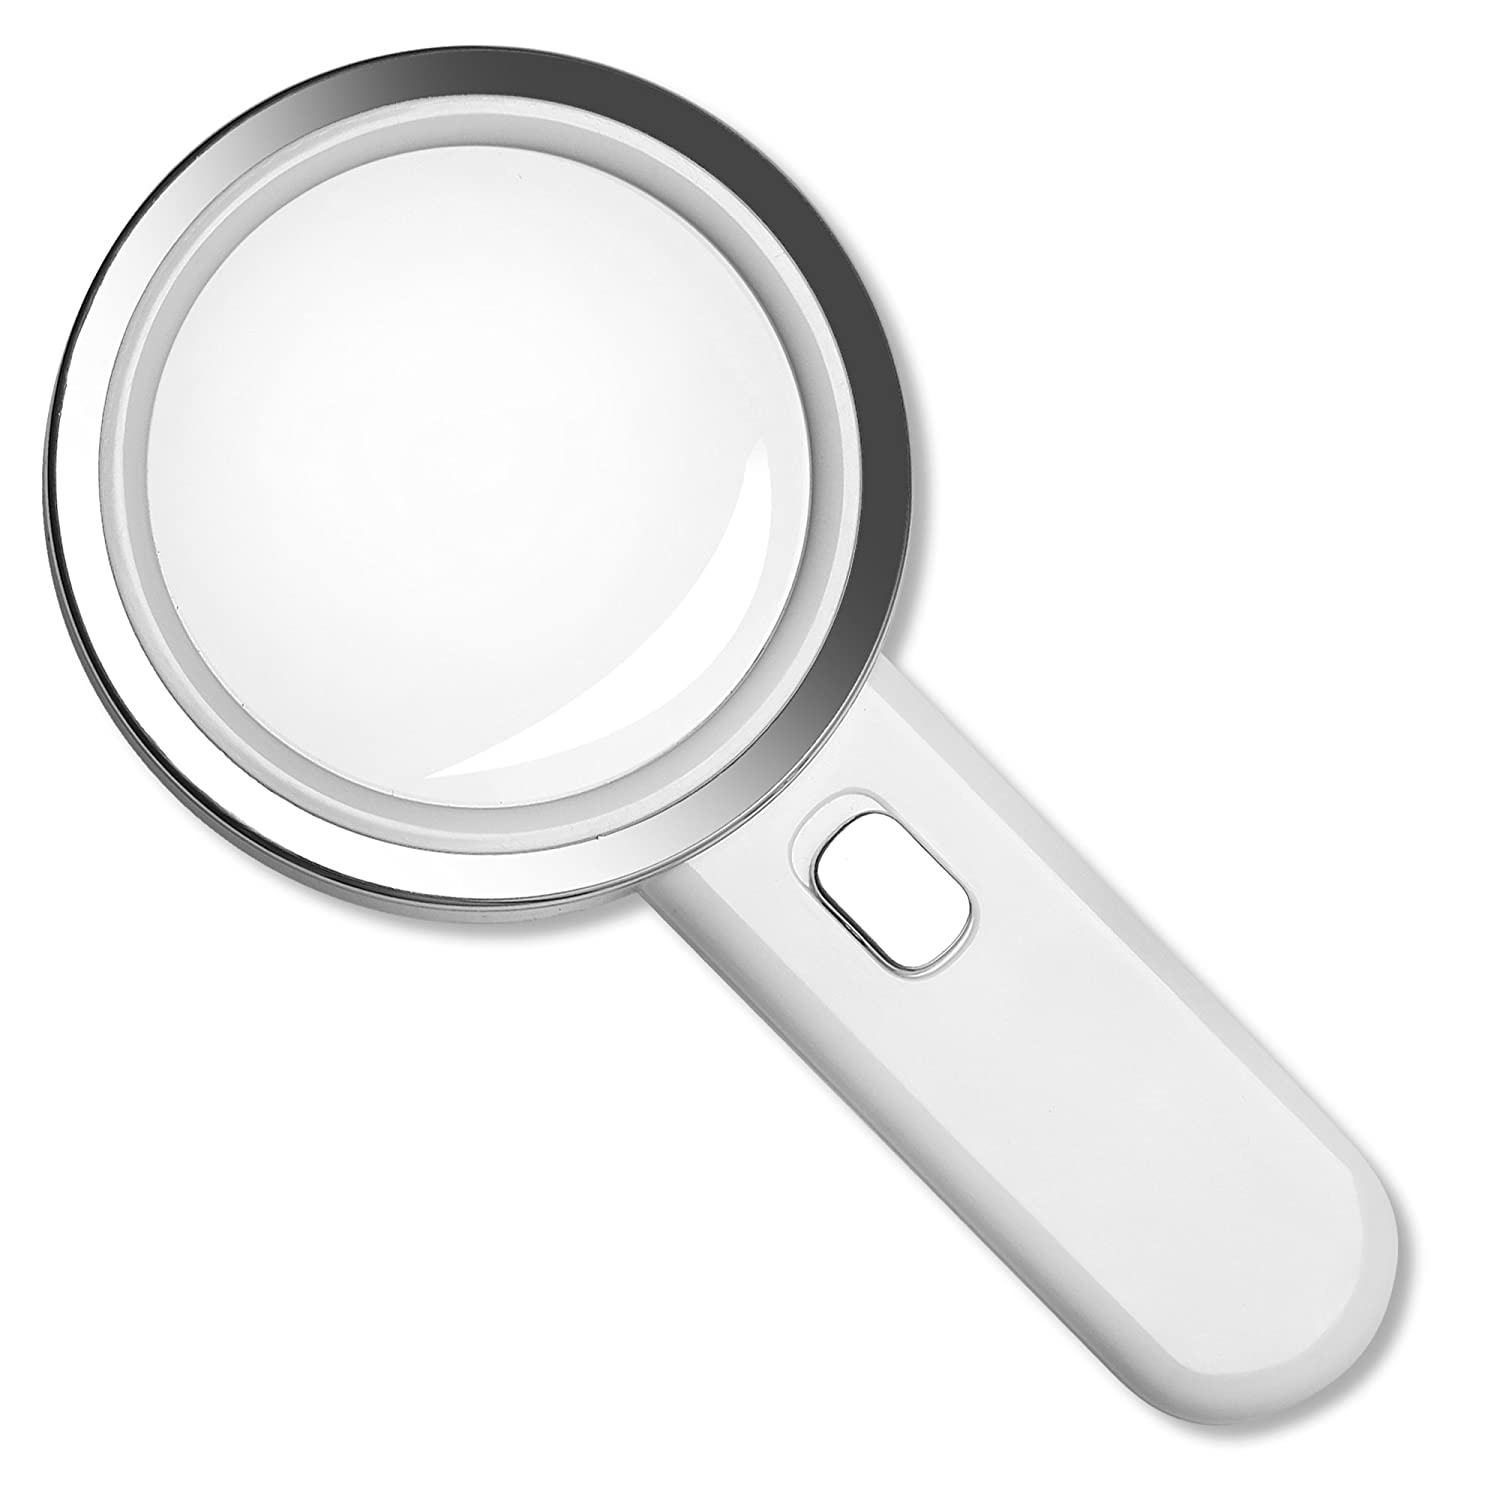 Top 9 Best Kids Magnifying Glass Reviews in 2019 8